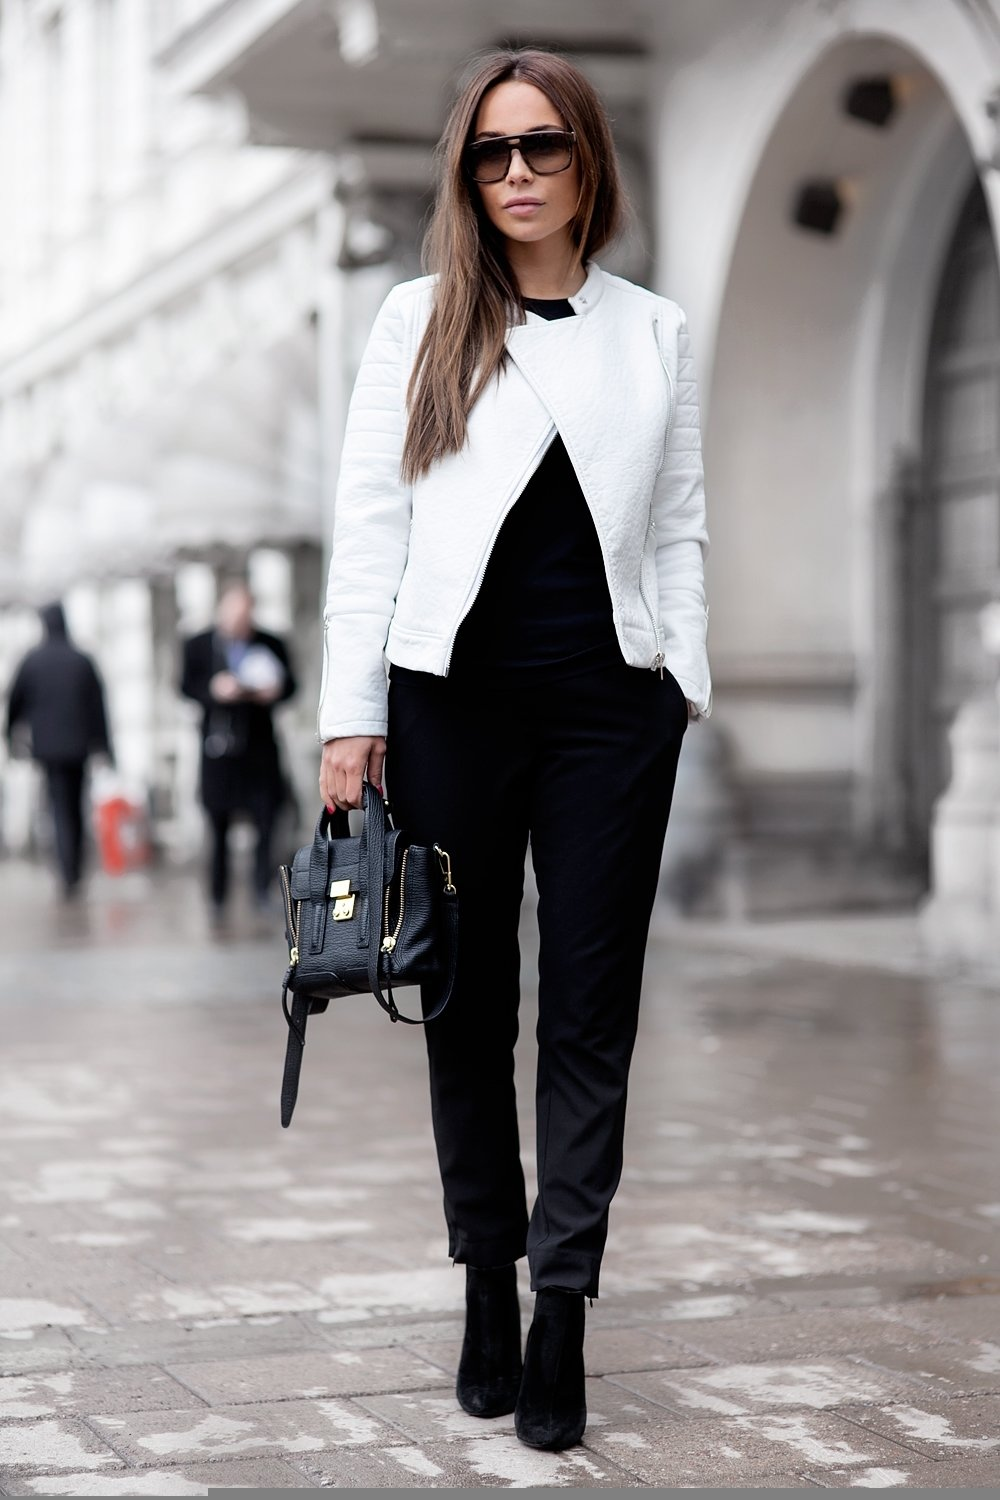 10 Unique Black And White Outfit Ideas black and white outfits just the design 1 2021